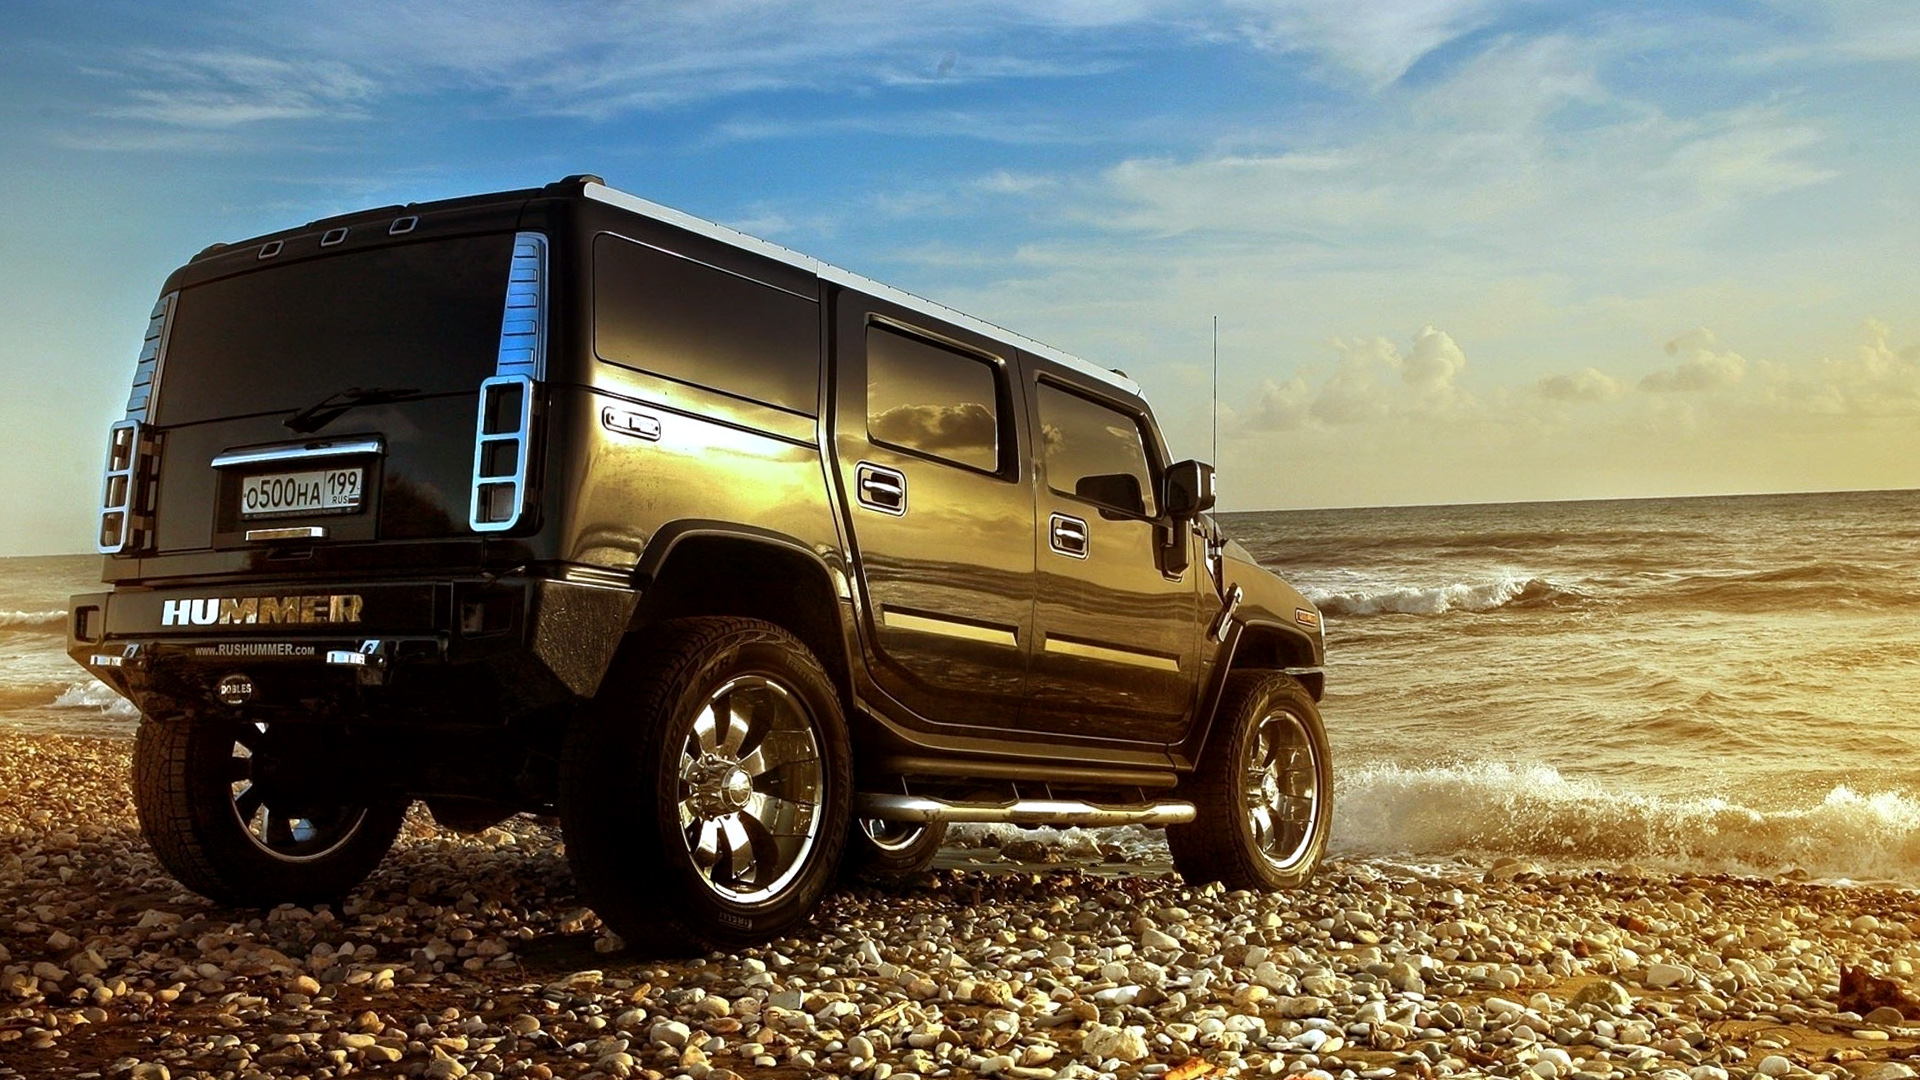 Black Hummer Beach Wallpapers HD Desktop and Mobile Backgrounds